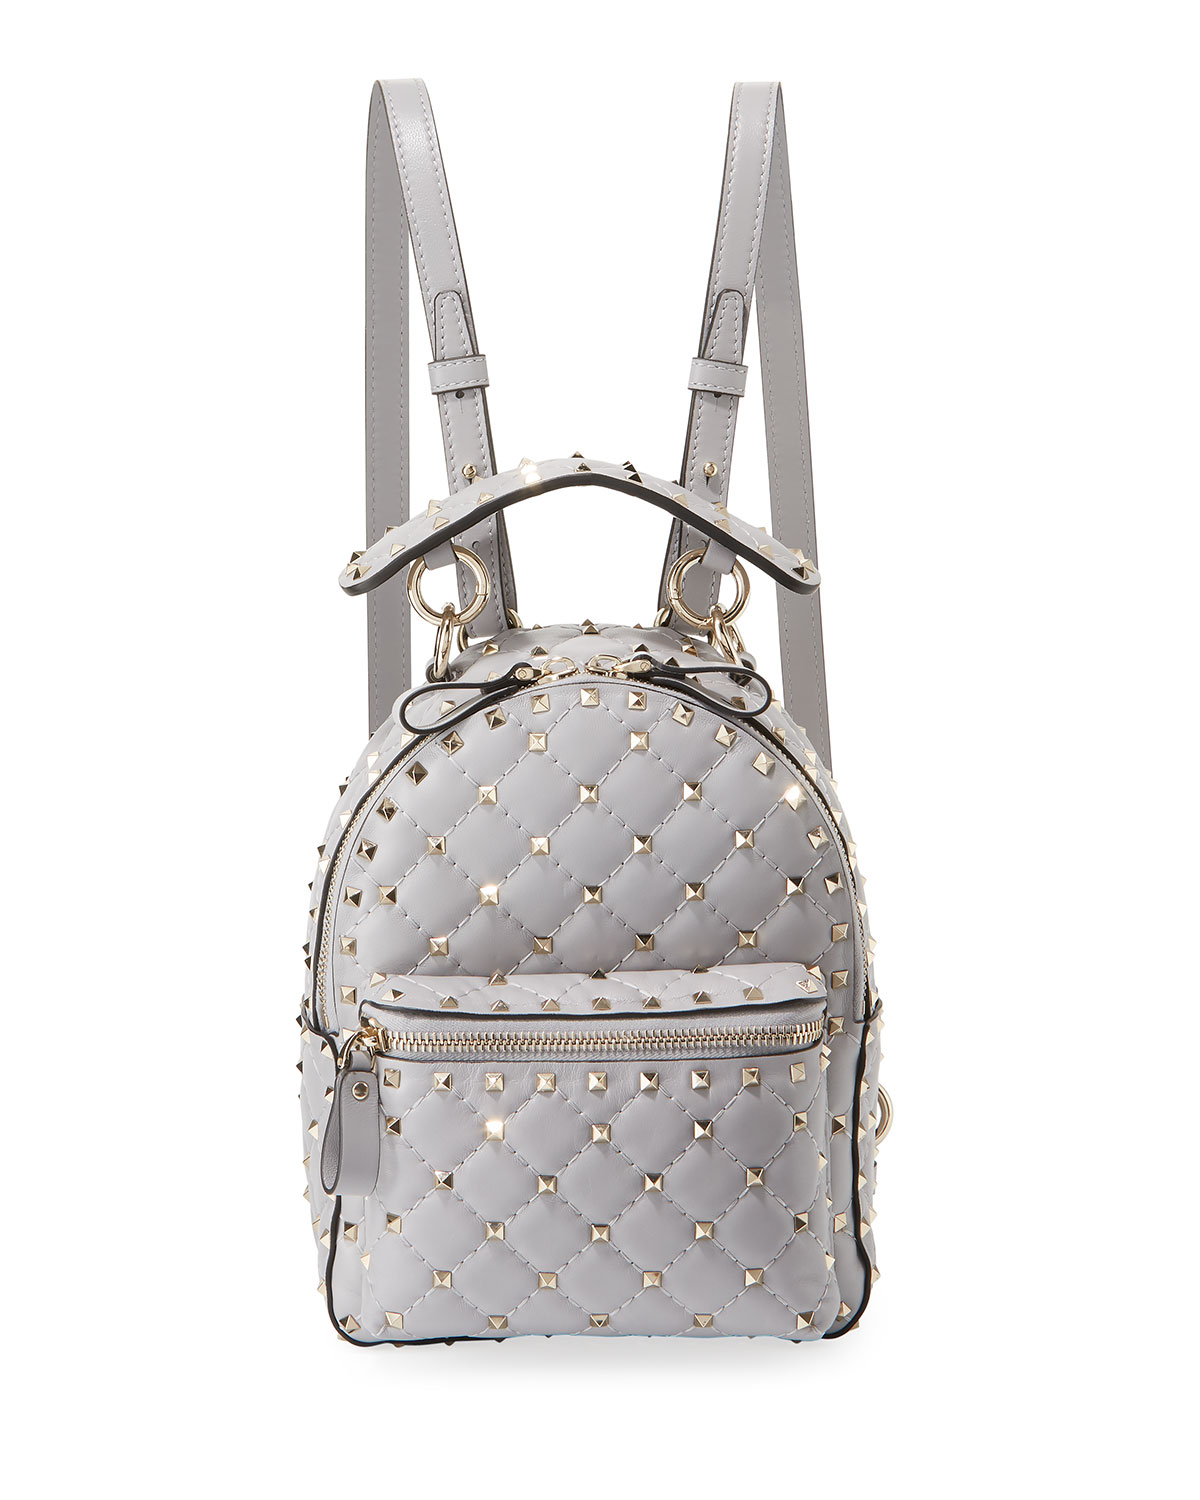 Valentino Garavani Rockstud Spike Mini Leather Backpack   Neiman Marcus b29d28cf76